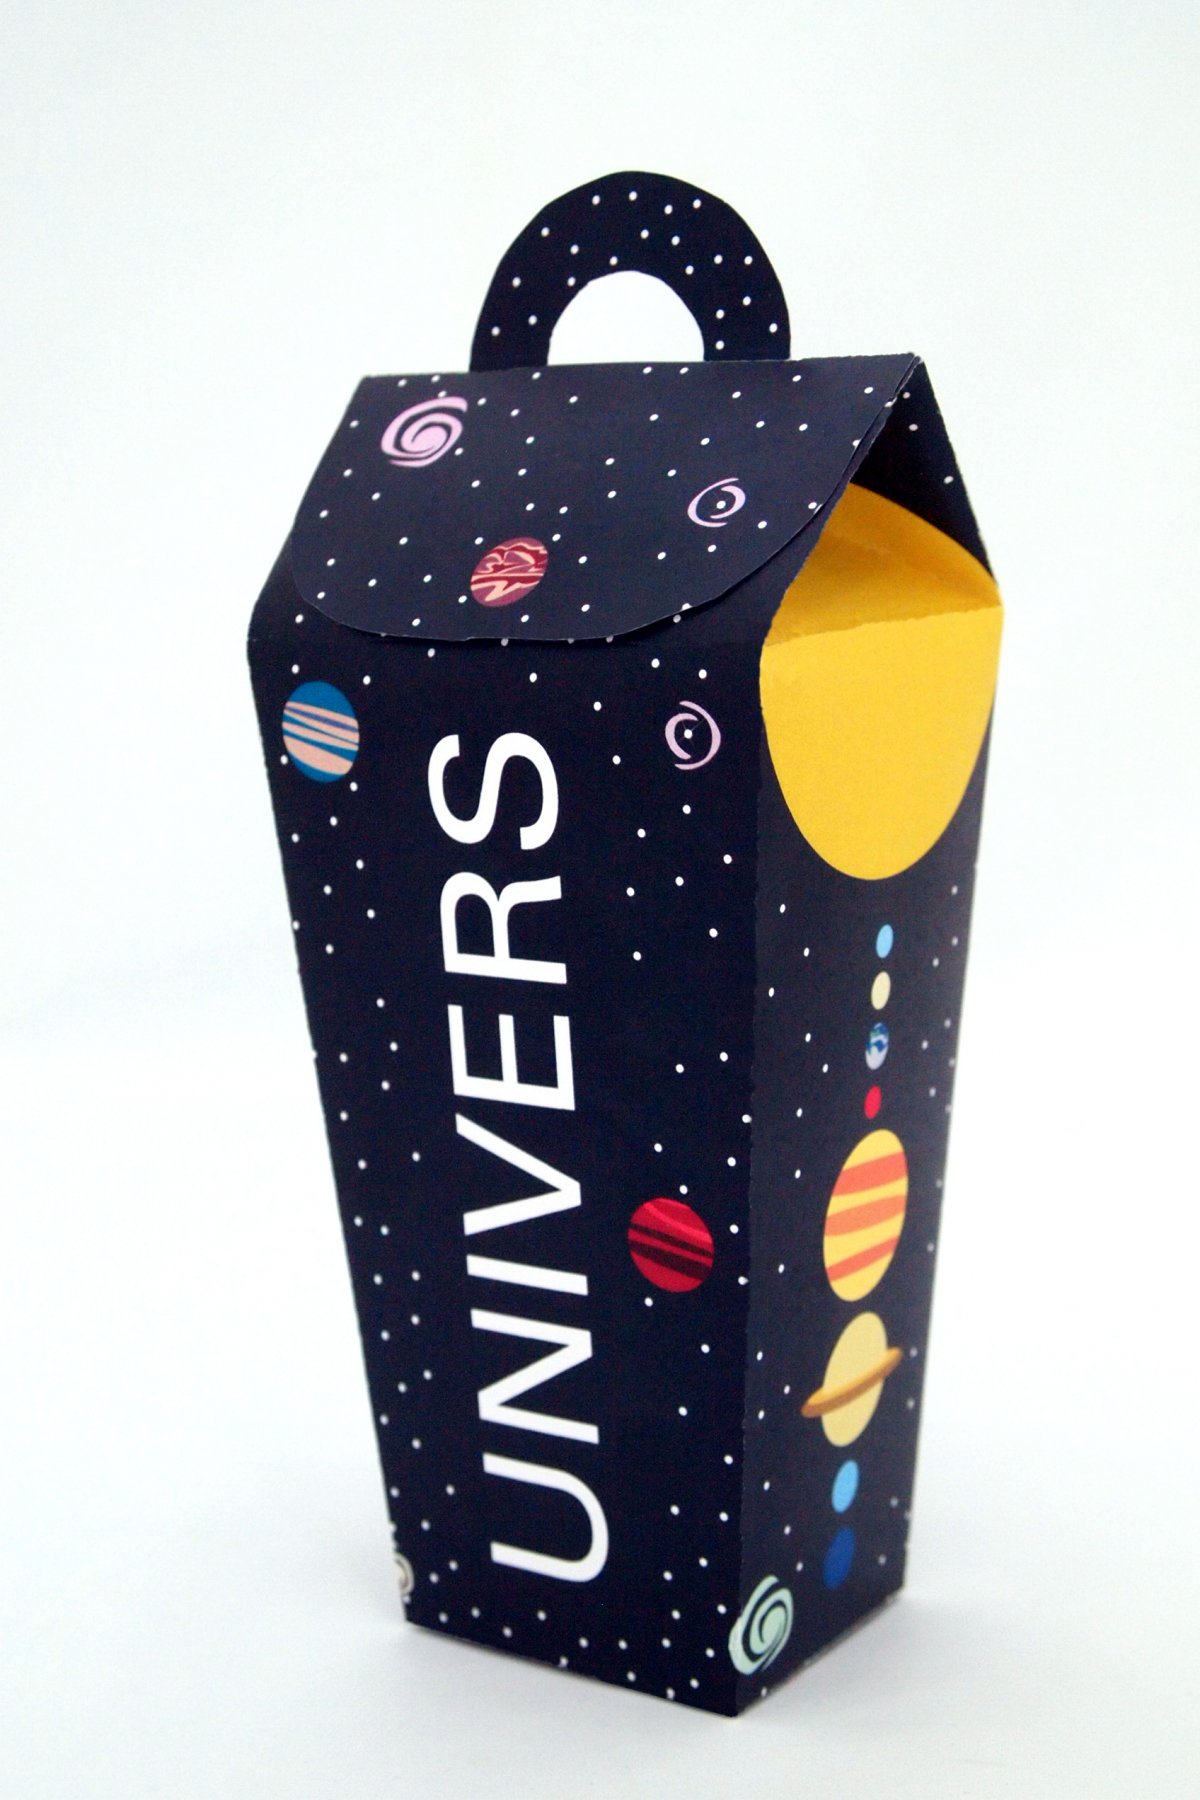 A corner shot of the front of the package and the right side showing an illustration of the solar system.